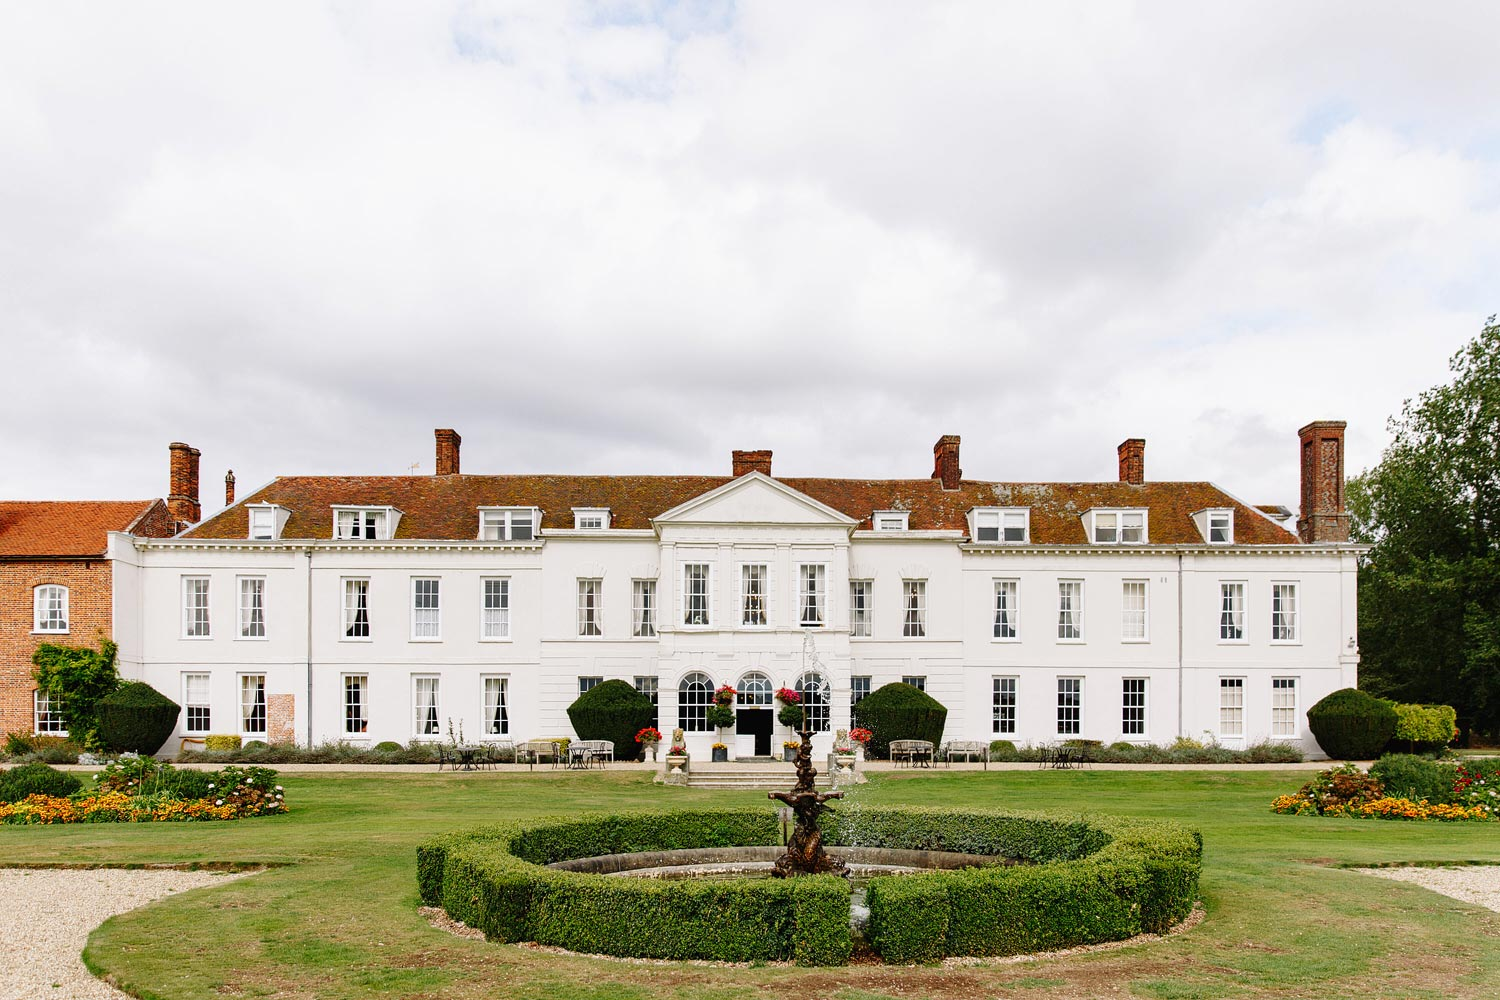 An external photograph of Gosfield Hall